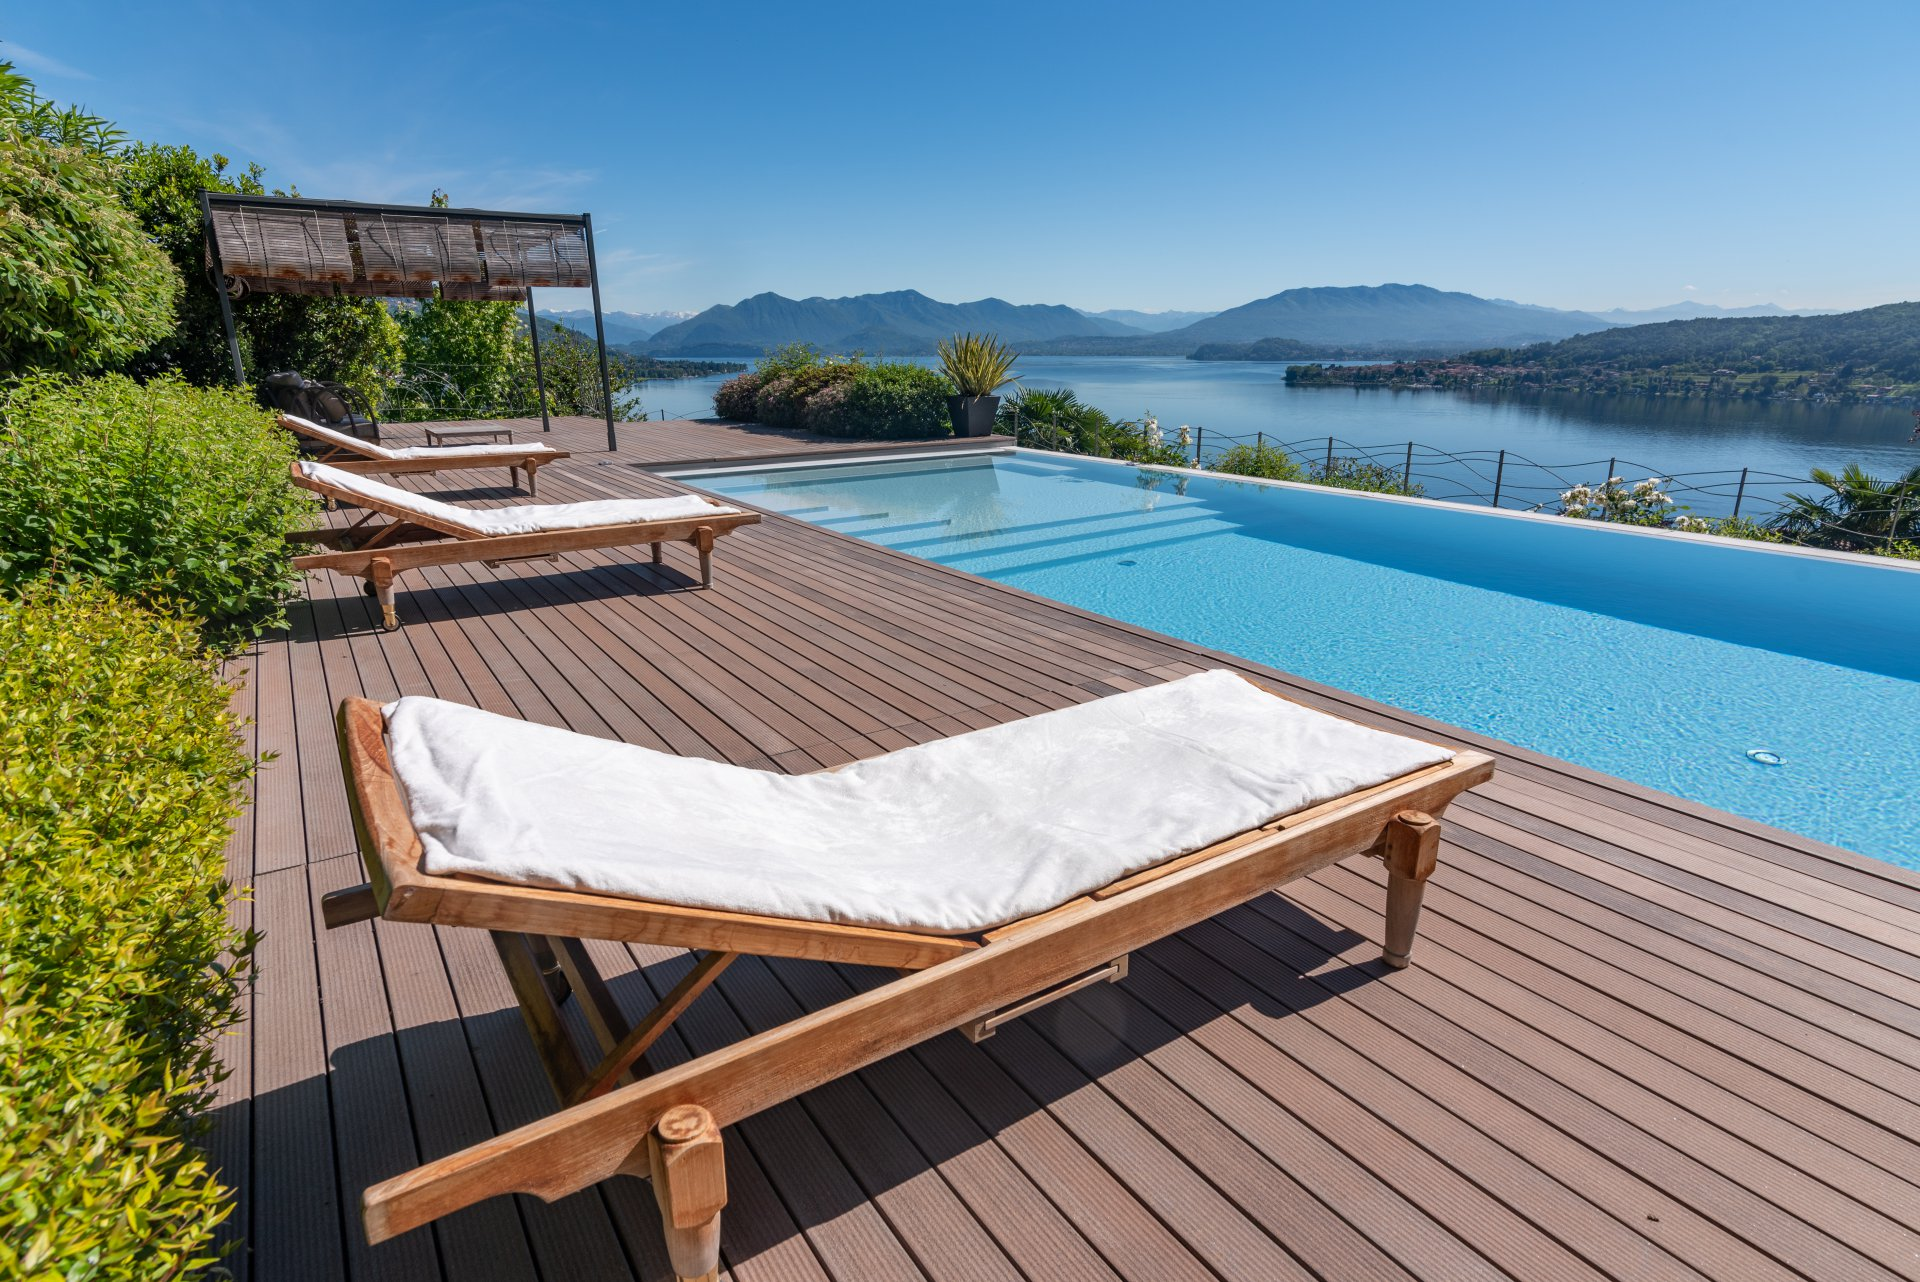 Infinity pool with panoramic view on lake Maggiore